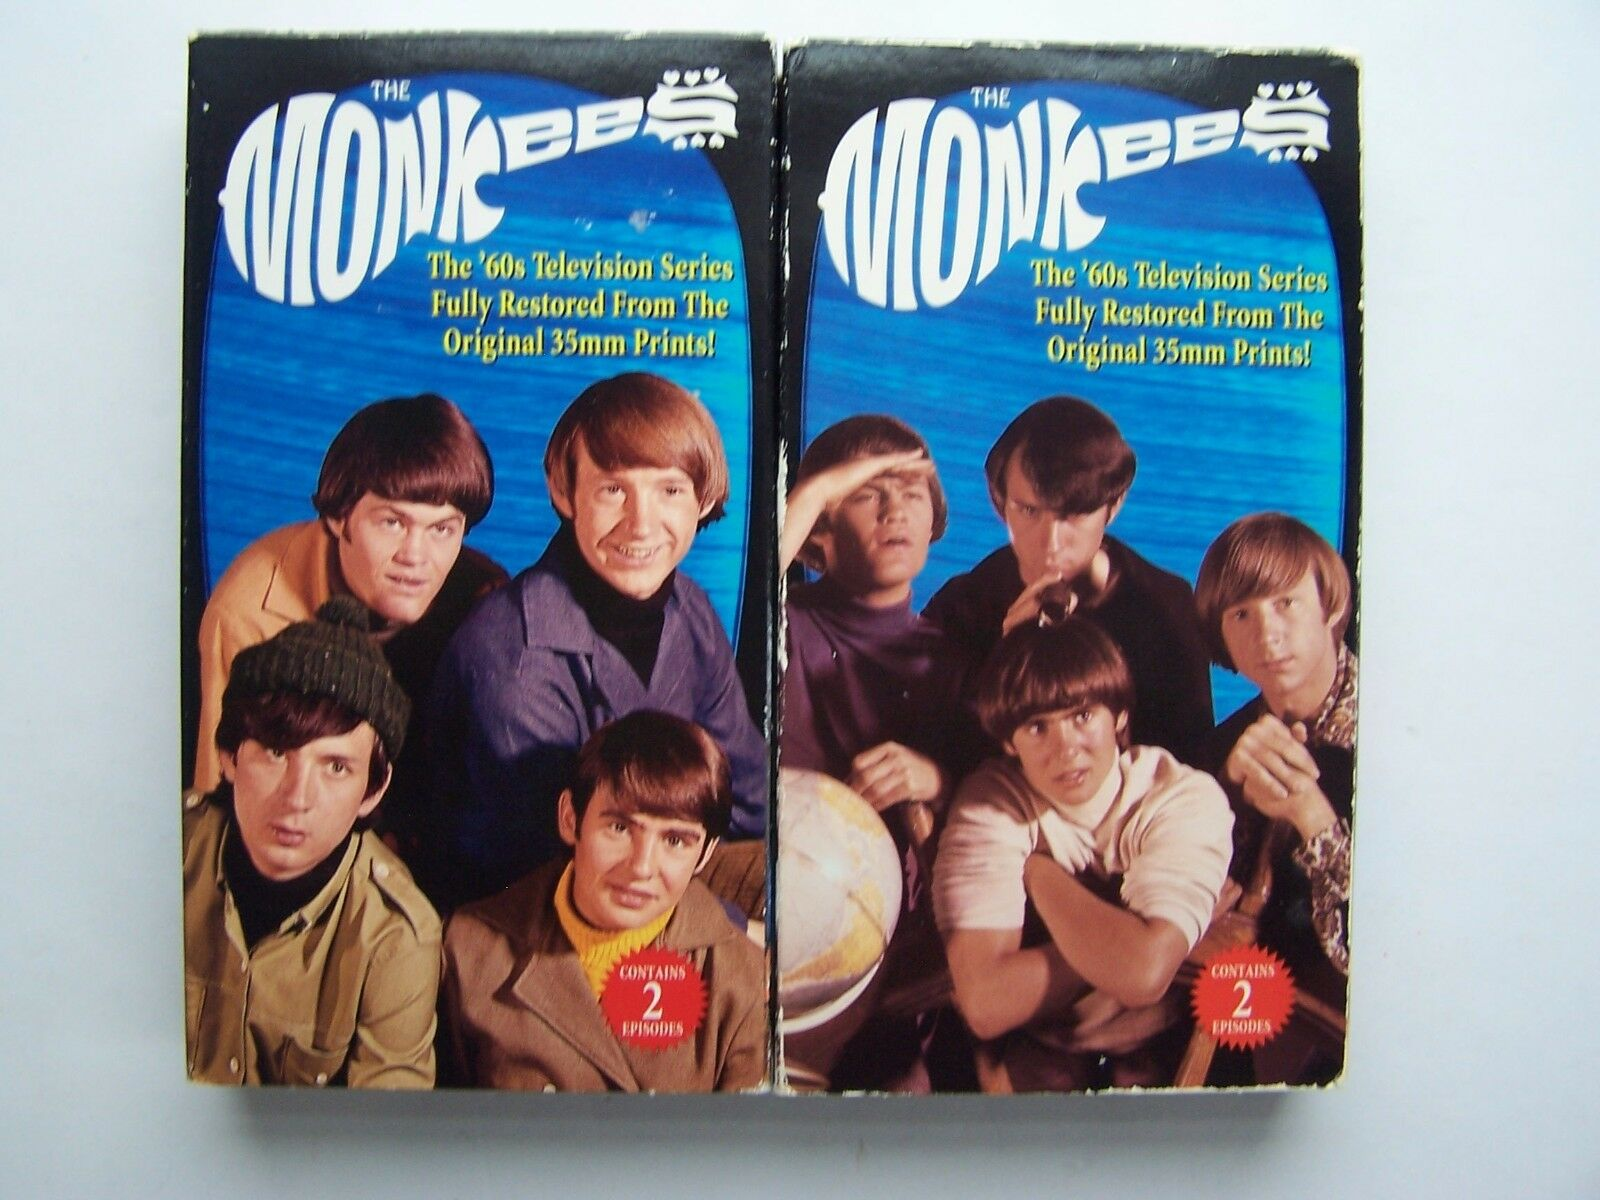 The Monkees 4-Episode VHS Video Tape Lot 81227223533